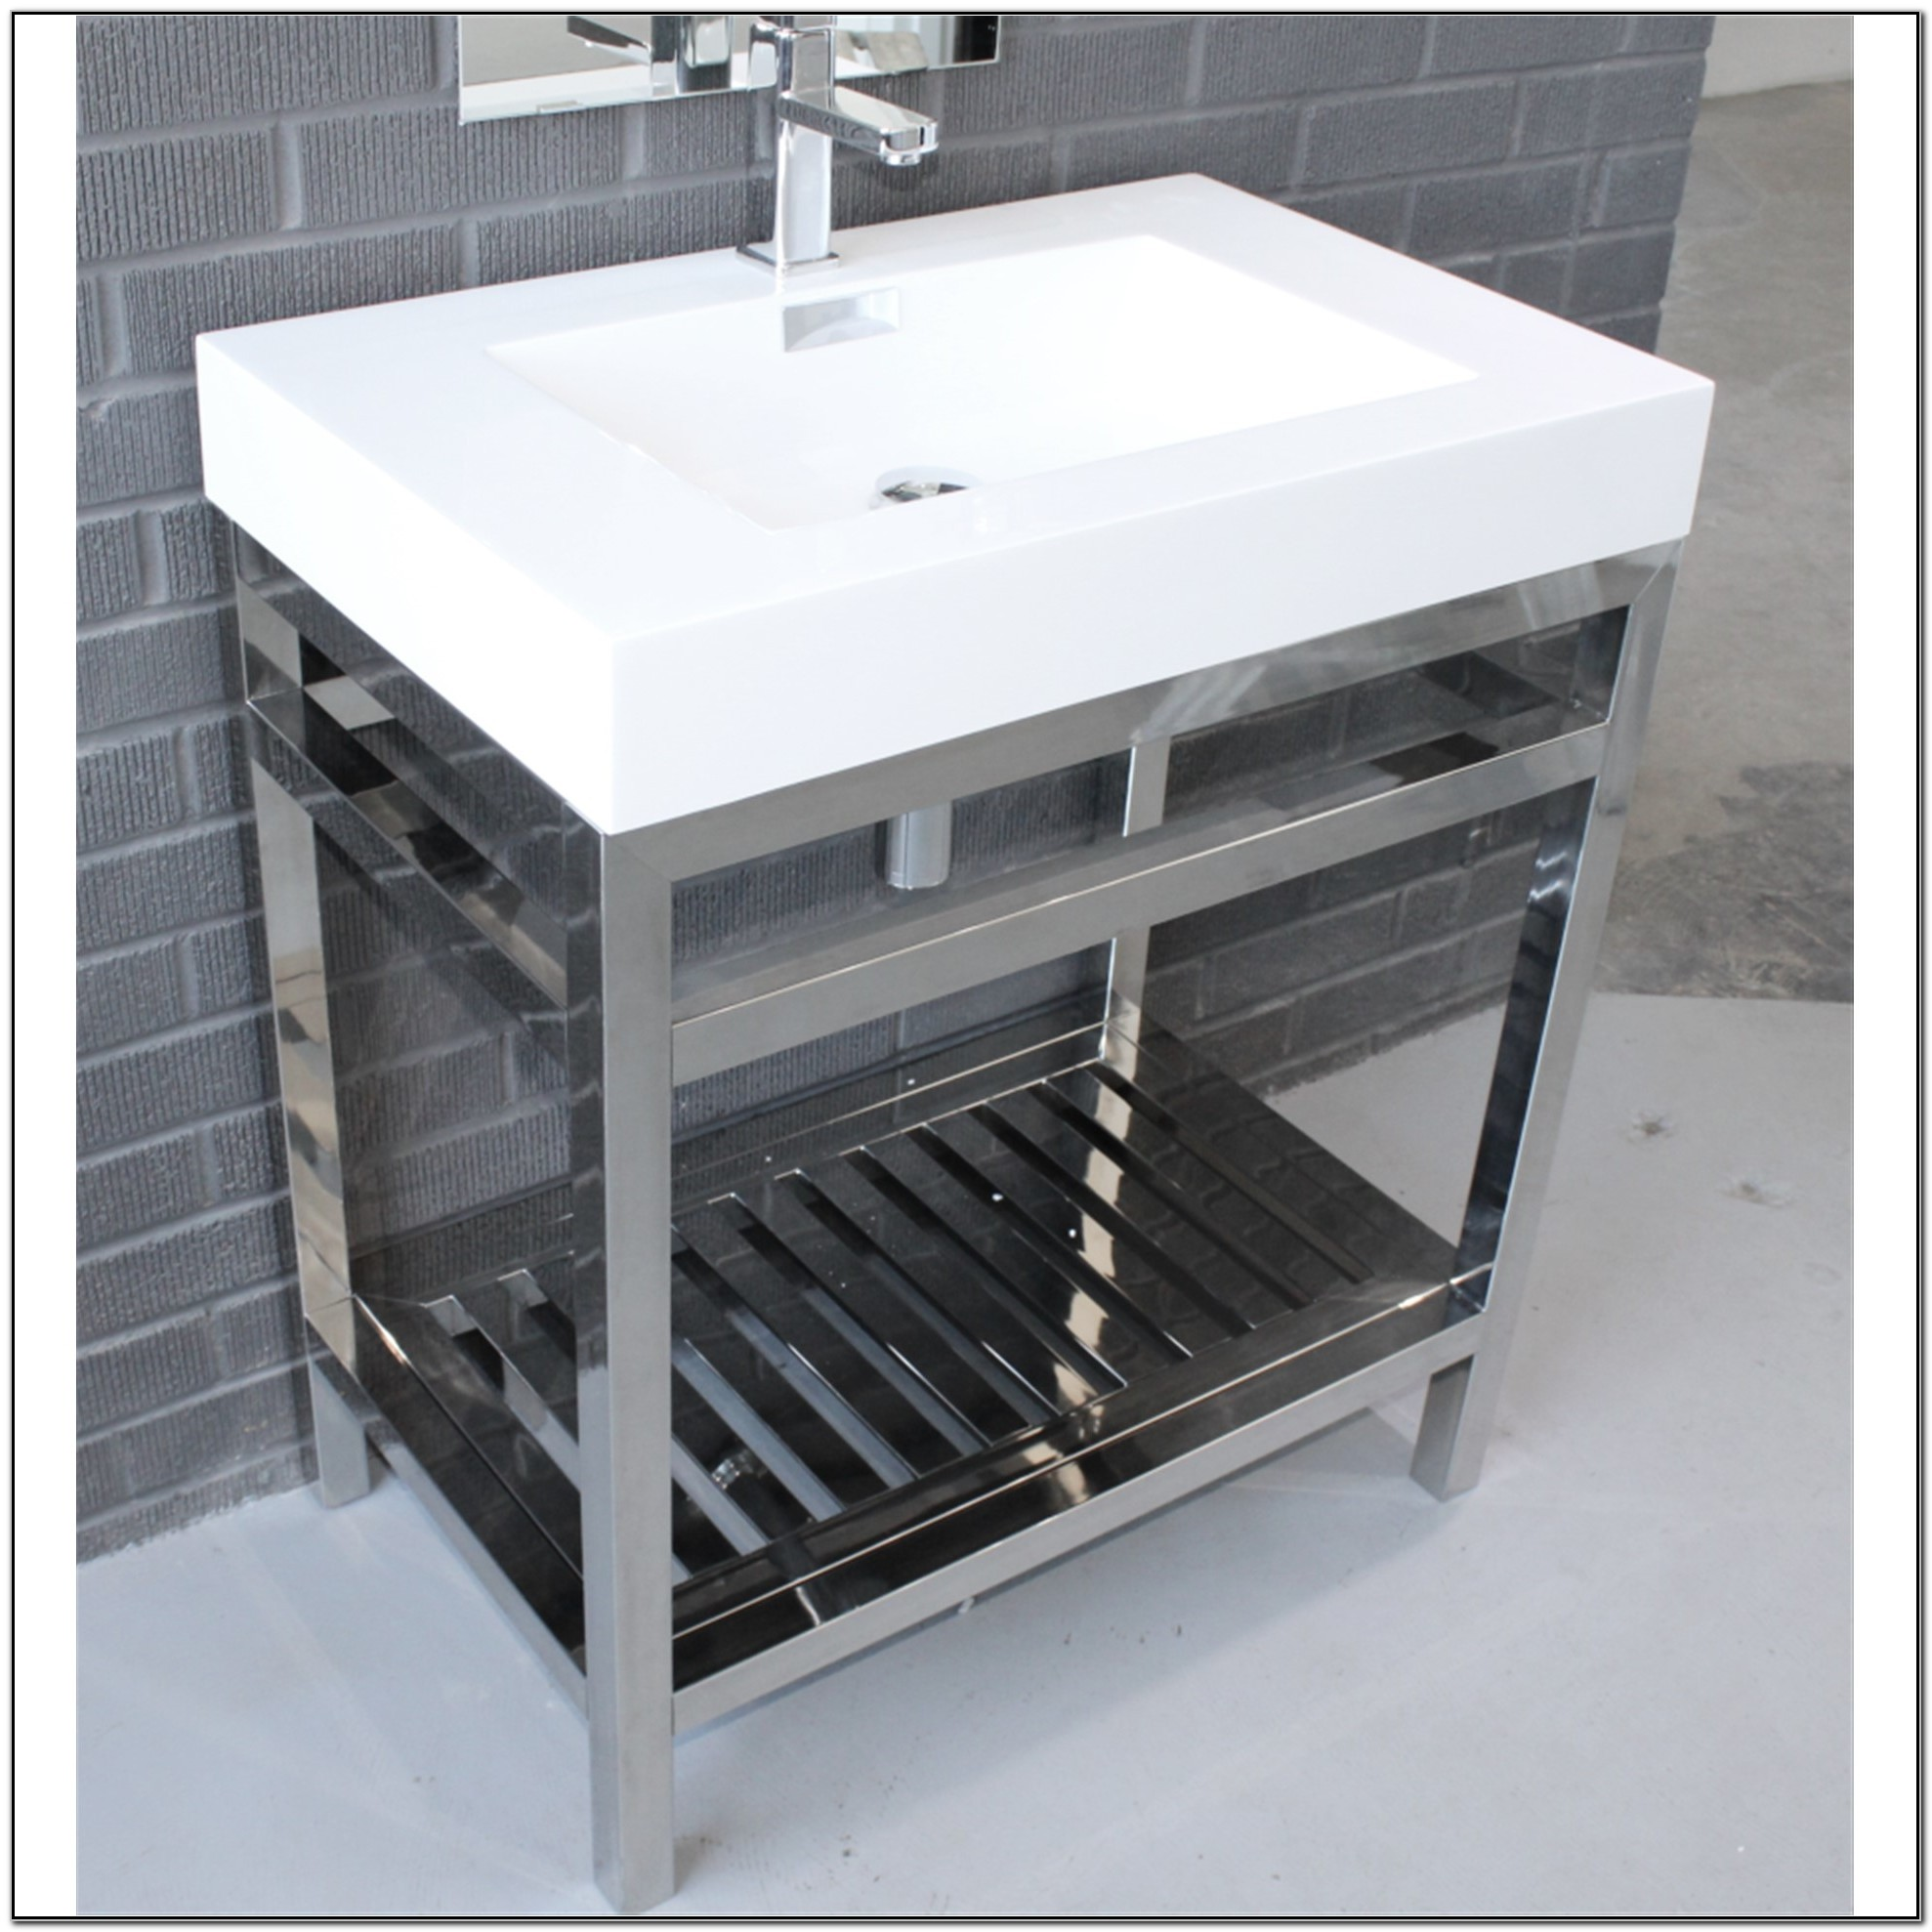 Stainless Steel Freestanding Sink Unit Sink And Faucets Home